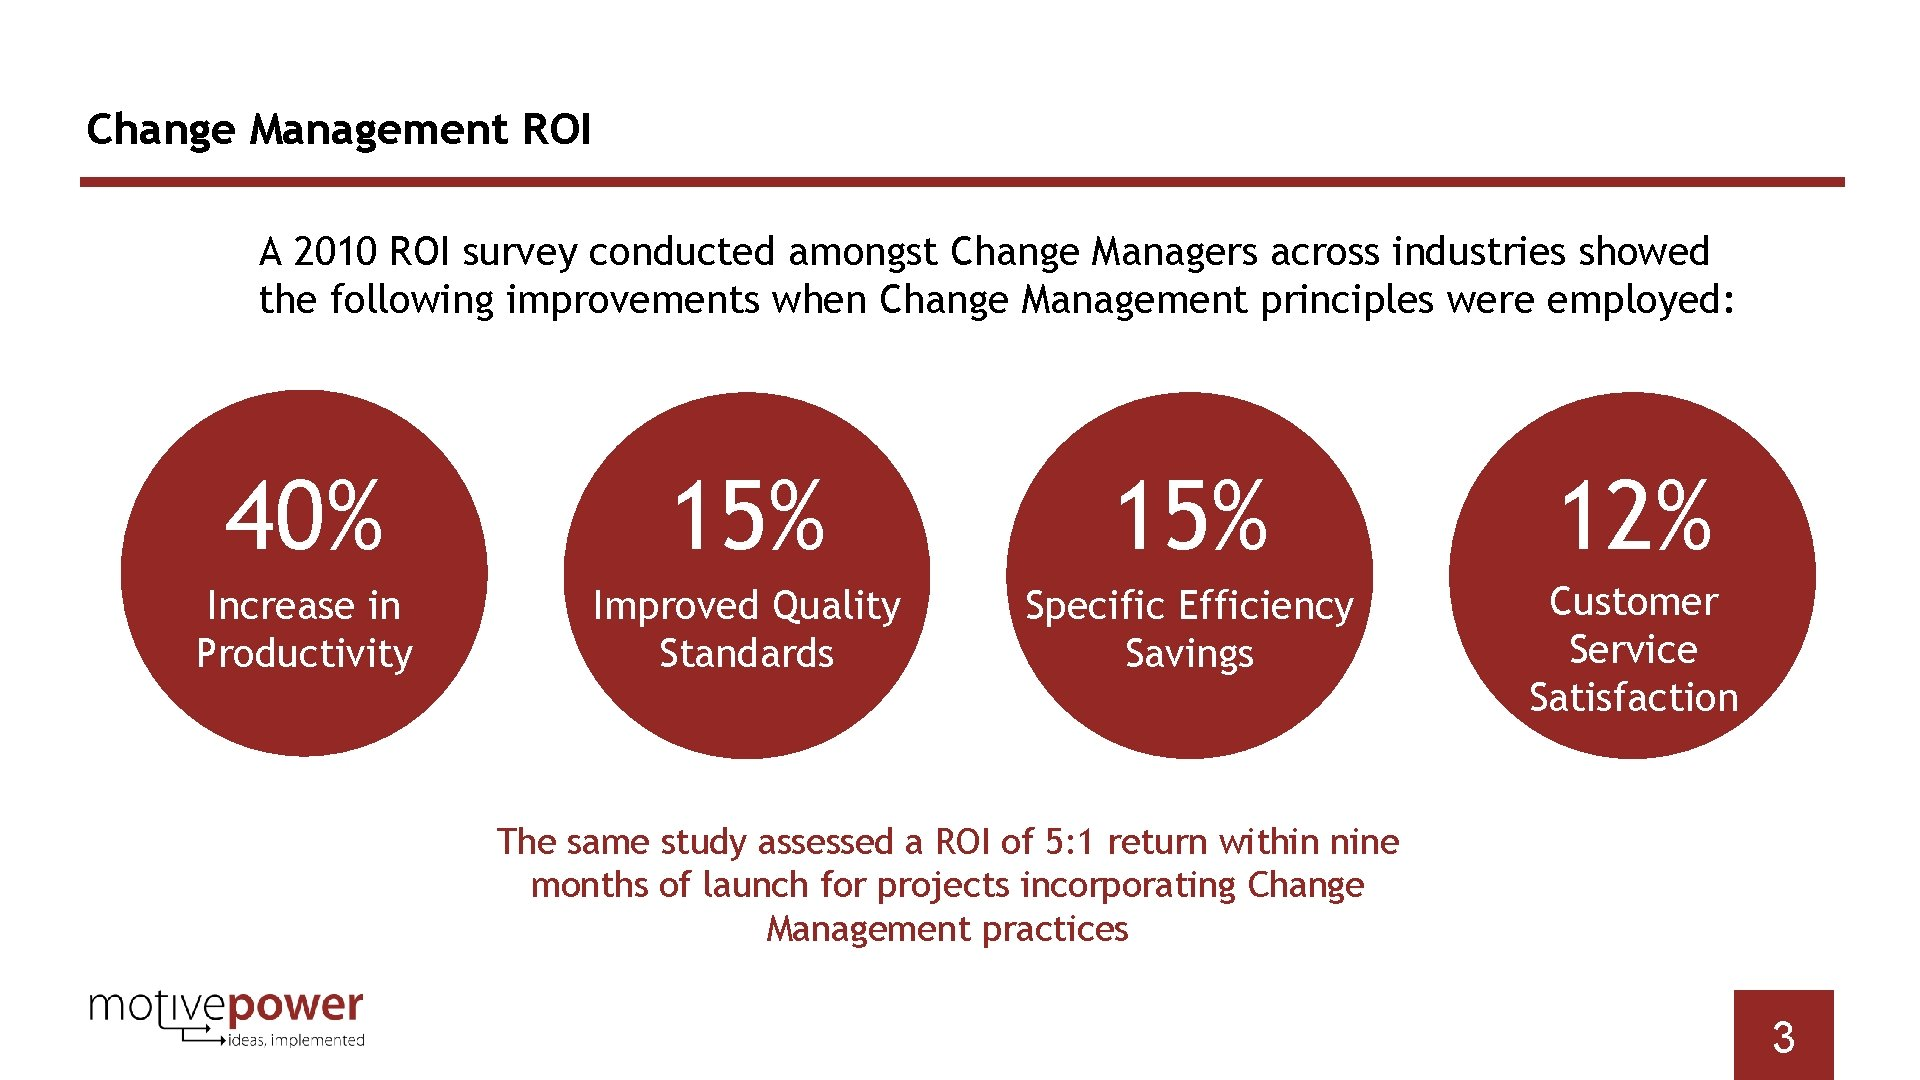 Change Management ROI A 2010 ROI survey conducted amongst Change Managers across industries showed